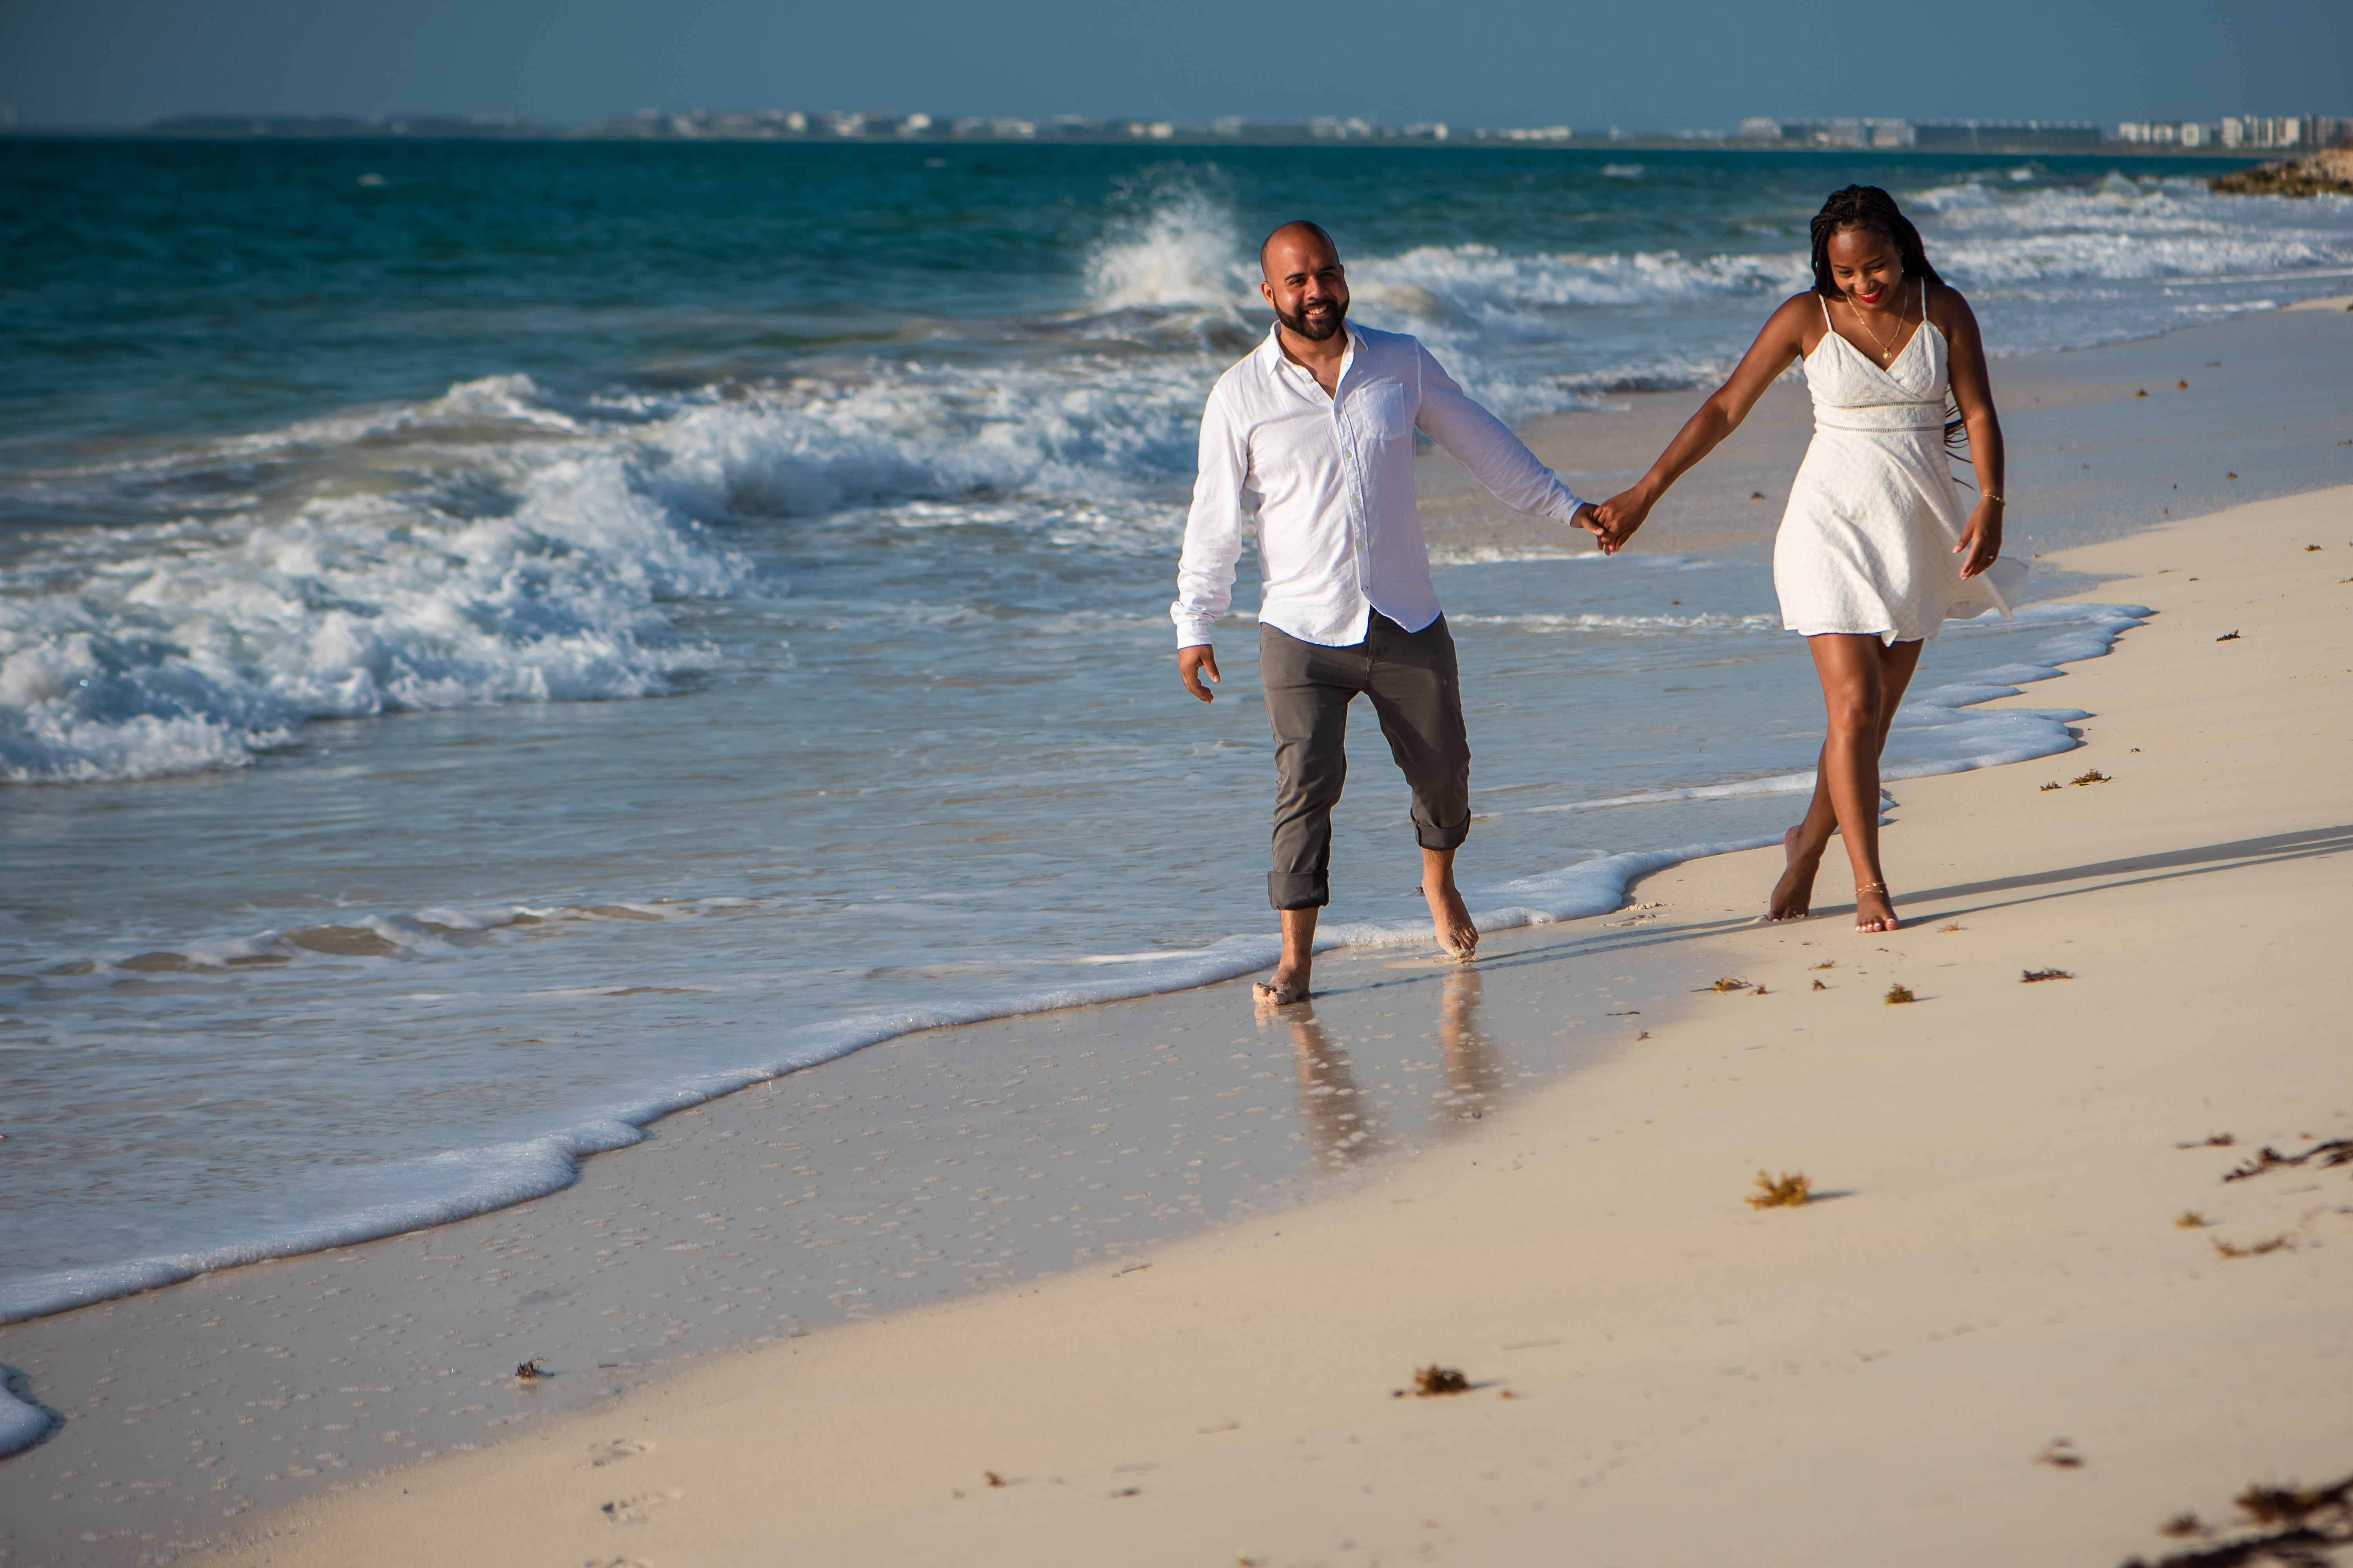 couple holding hands and walking at the beach in Isla Blanca Cancun smiling and having fun at Riu Costa Mujeres Hotel